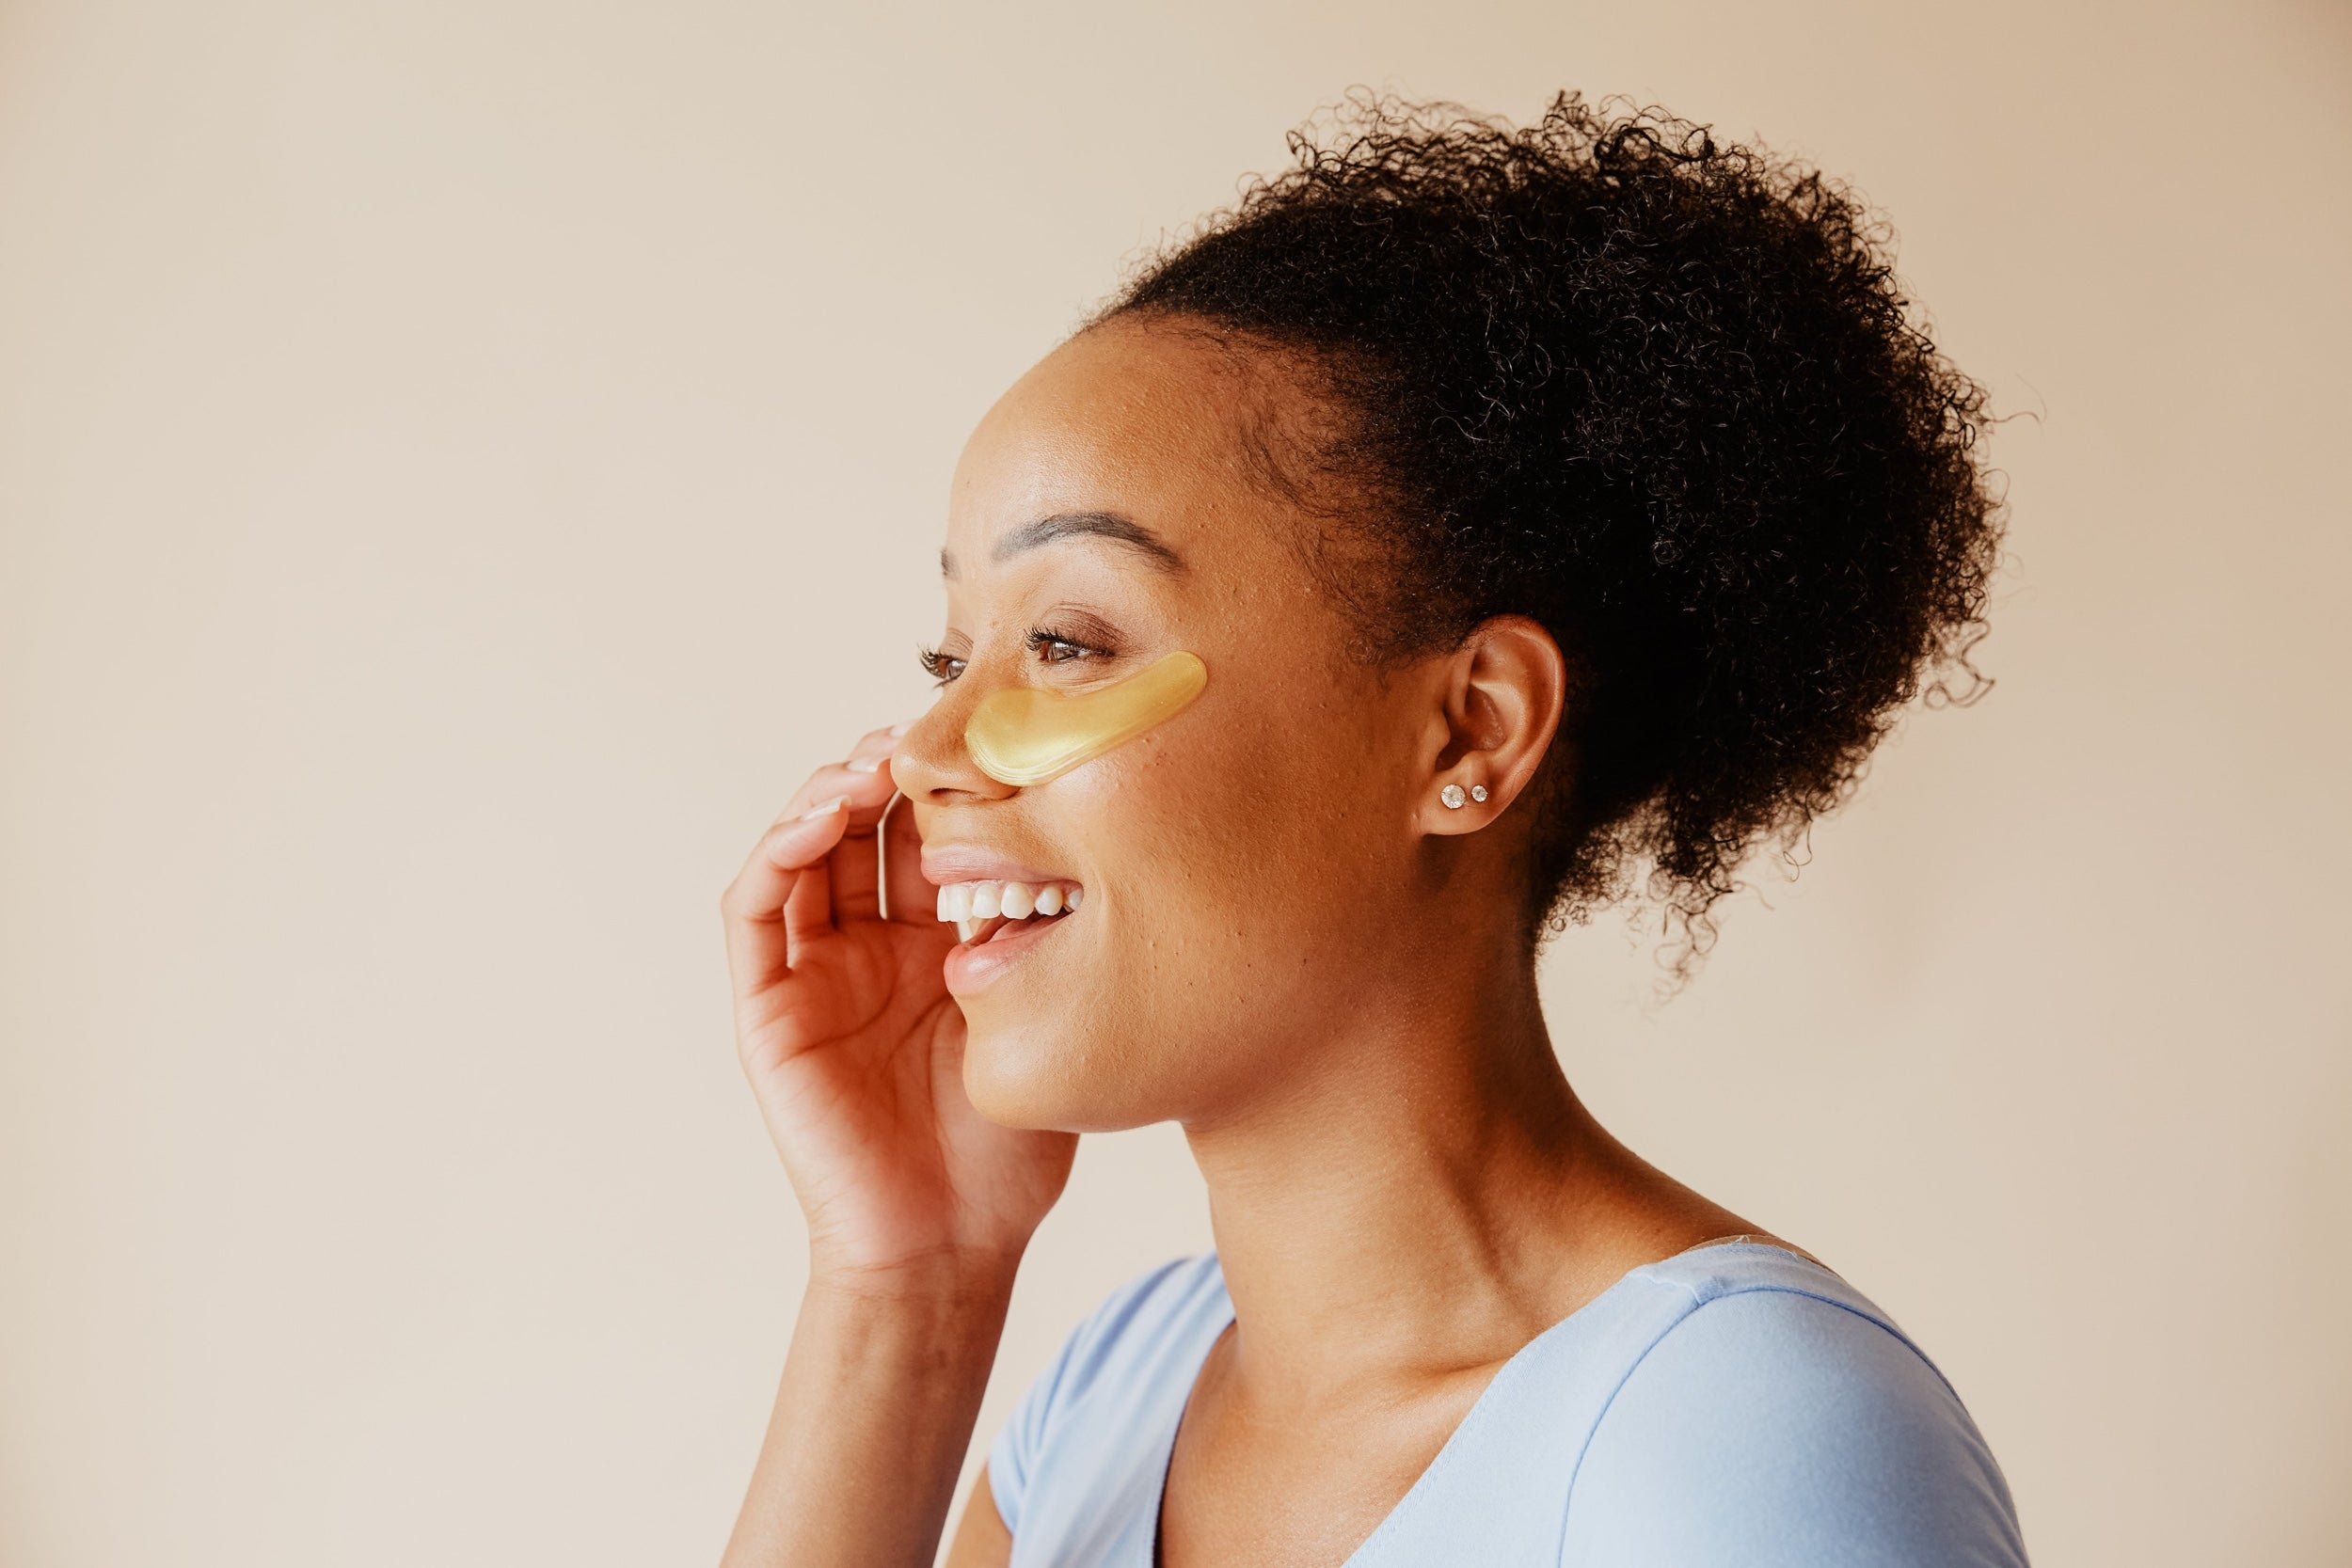 A smiling woman uses an eye mask skincare product